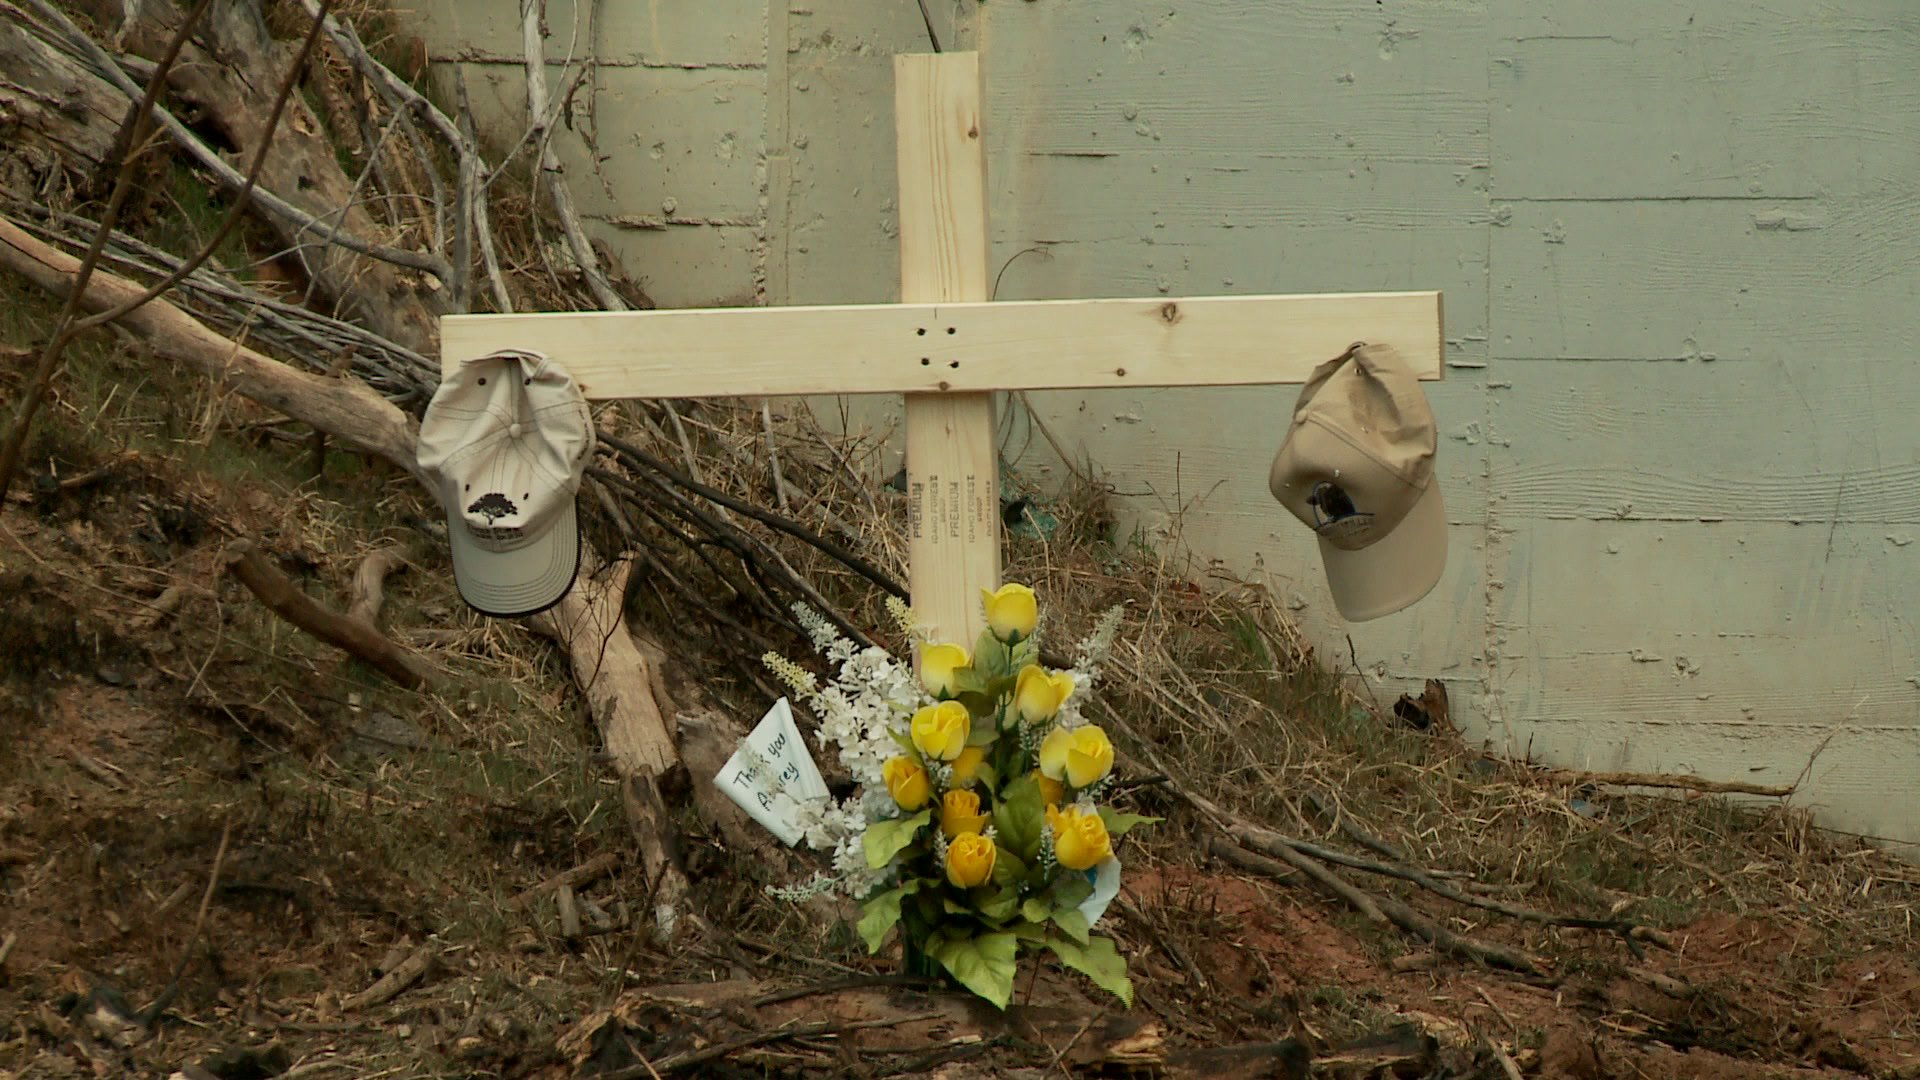 Shortly after the accident, a cross was placed at the scene where McClendon crashed his vehicle.